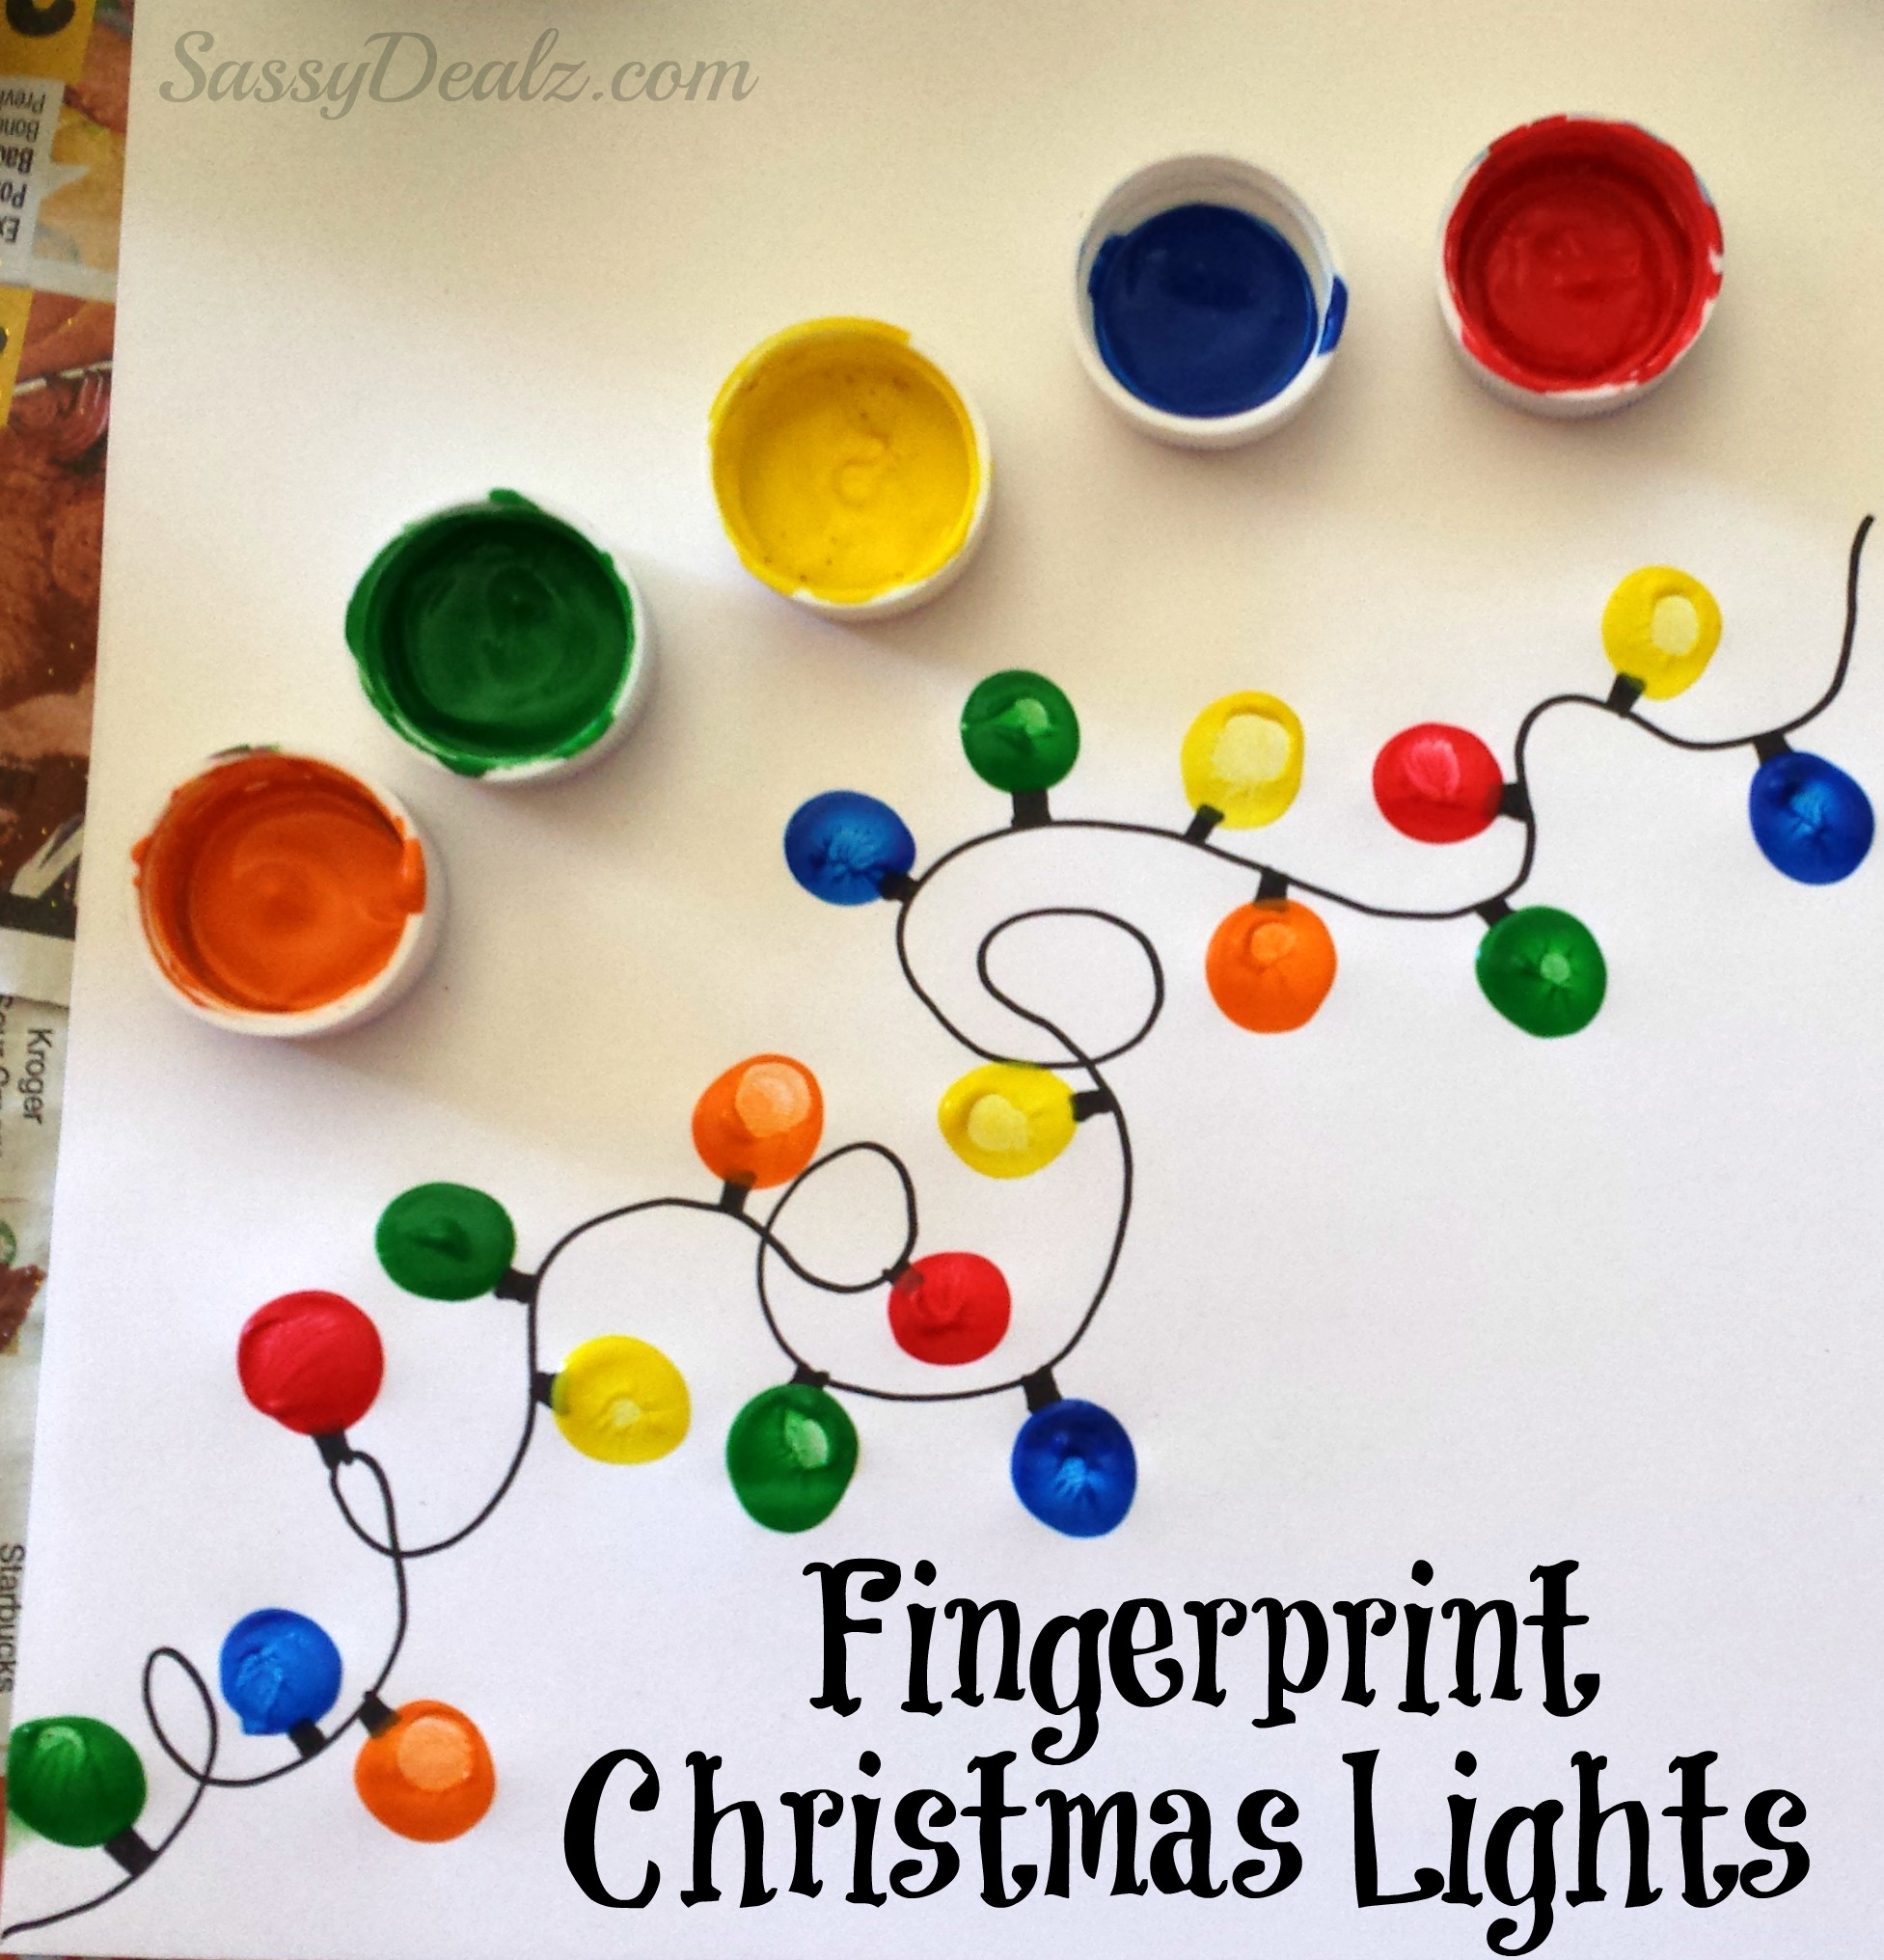 Christmas Lights clipart old style Kids Winter Ideas For Kids